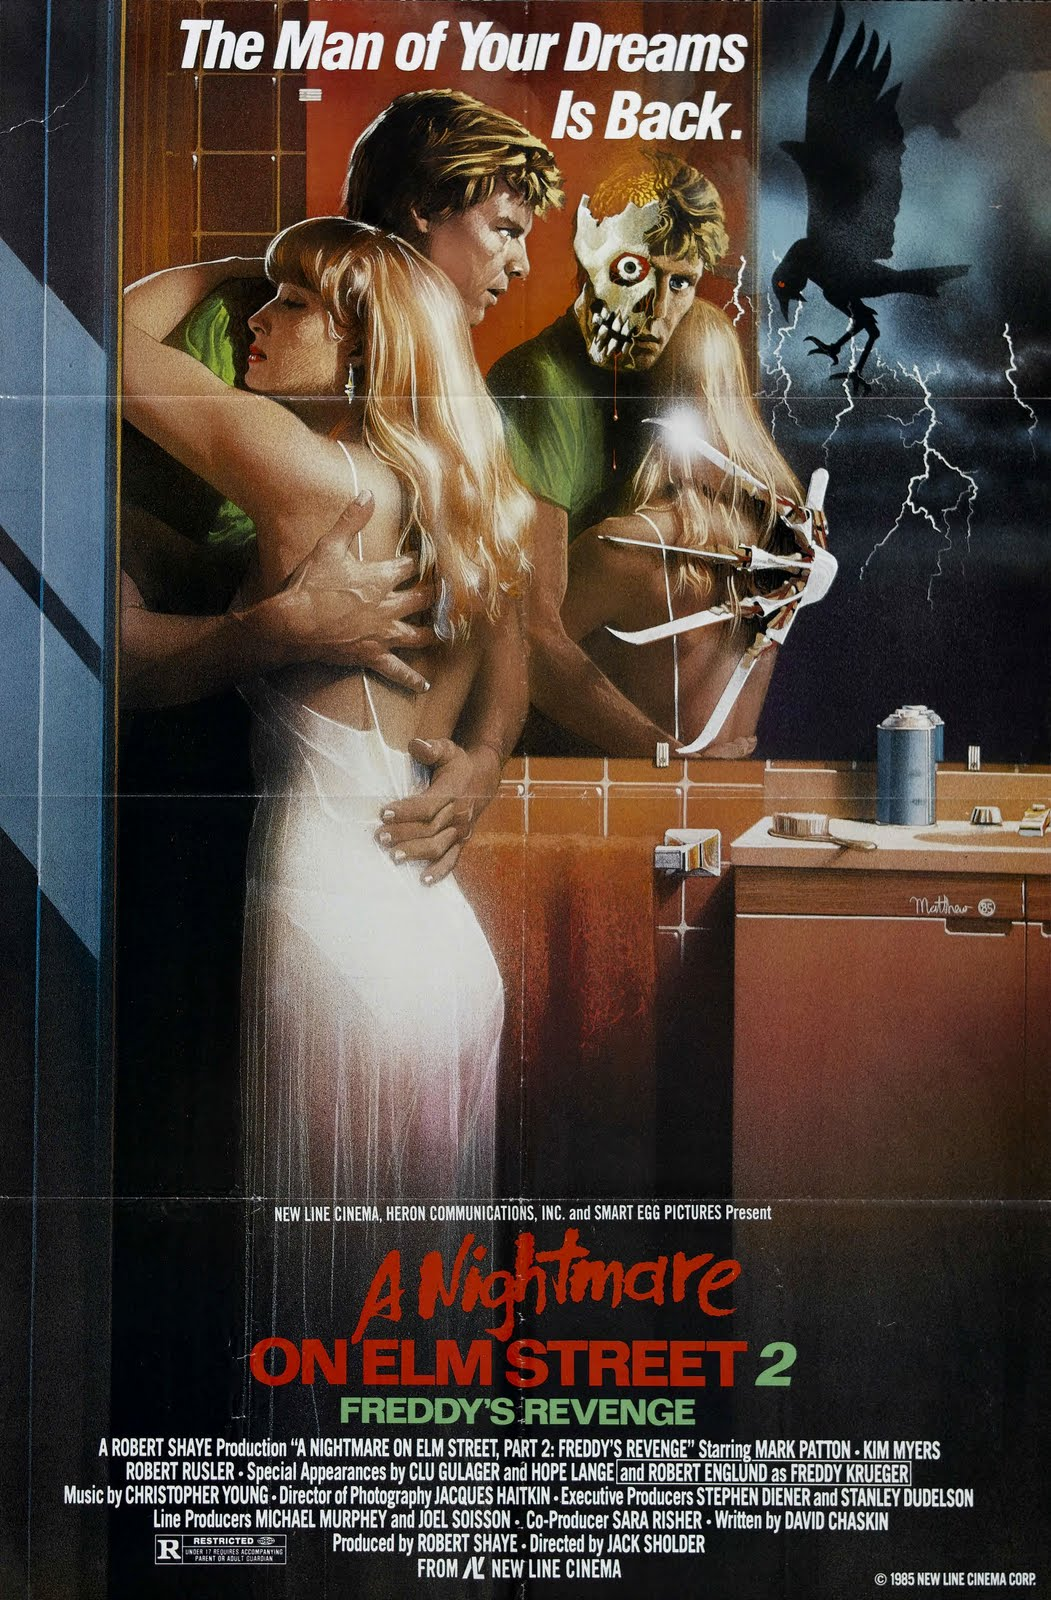 Happyotter: A NIGHTMARE ON ELM STREET 2: FREDDY'S REVENGE ...